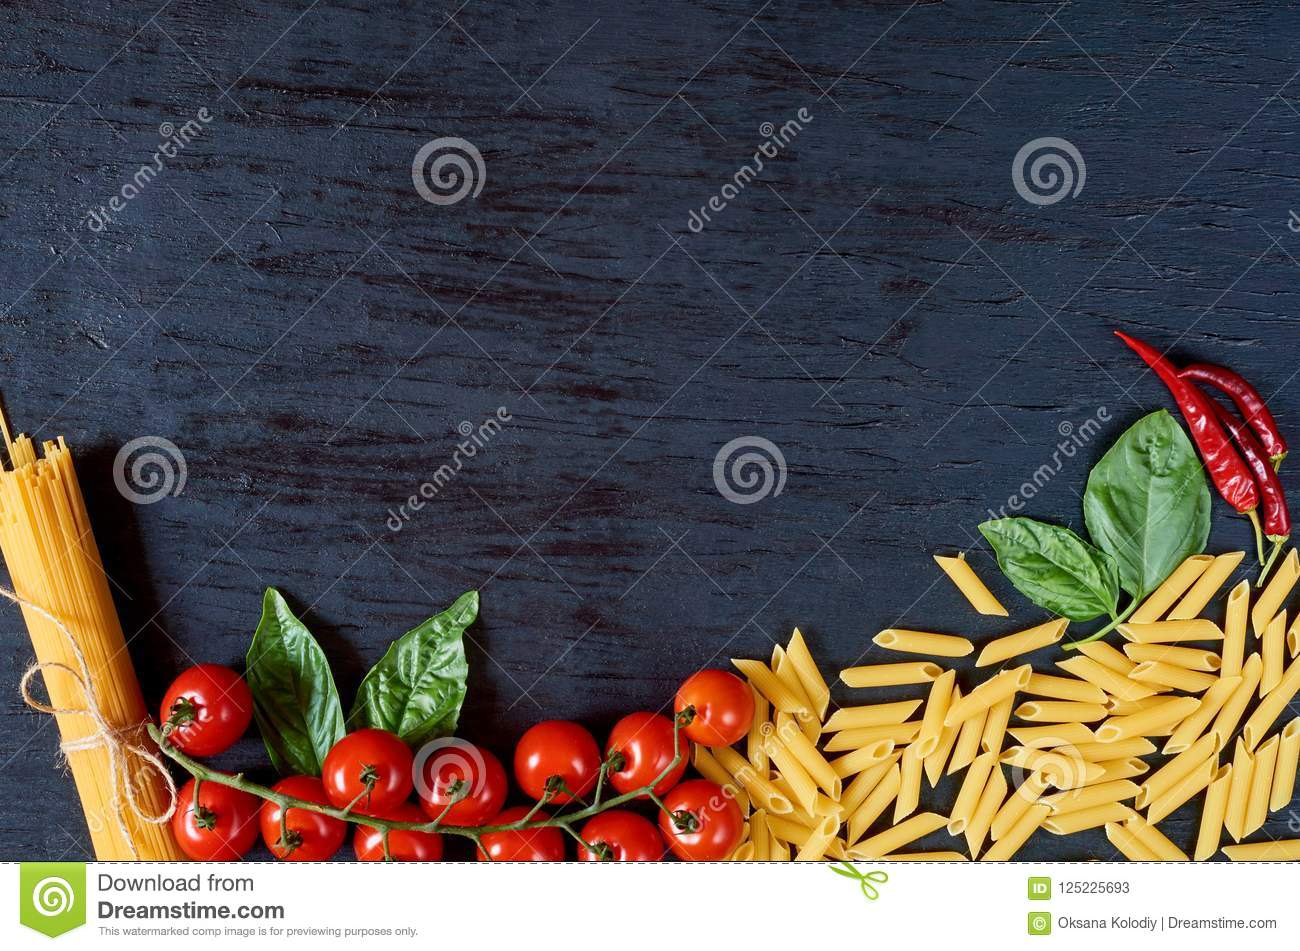 Italian traditional food, spices and ingredients for cooking: basil leaves, cherry tomatoes, chili pepper and various pasta